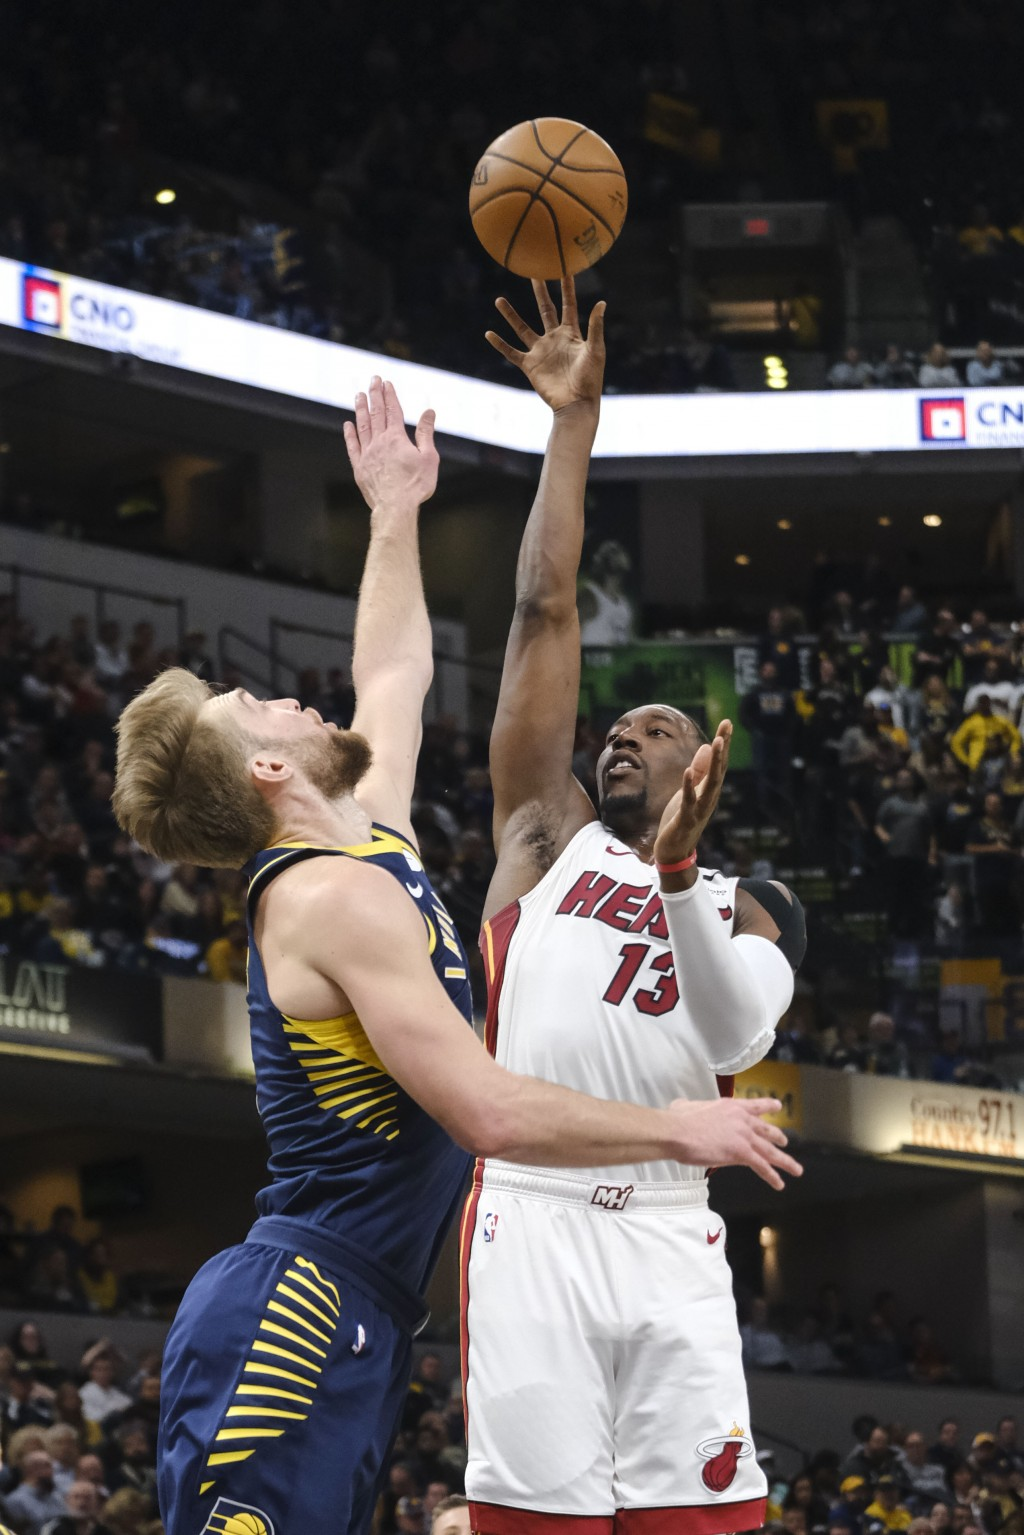 Miami Heat center Bam Adebayo (13) shoots over Indiana Pacers forward Domantas Sabonis (11) during the first half of an NBA basketball game in Indiana...